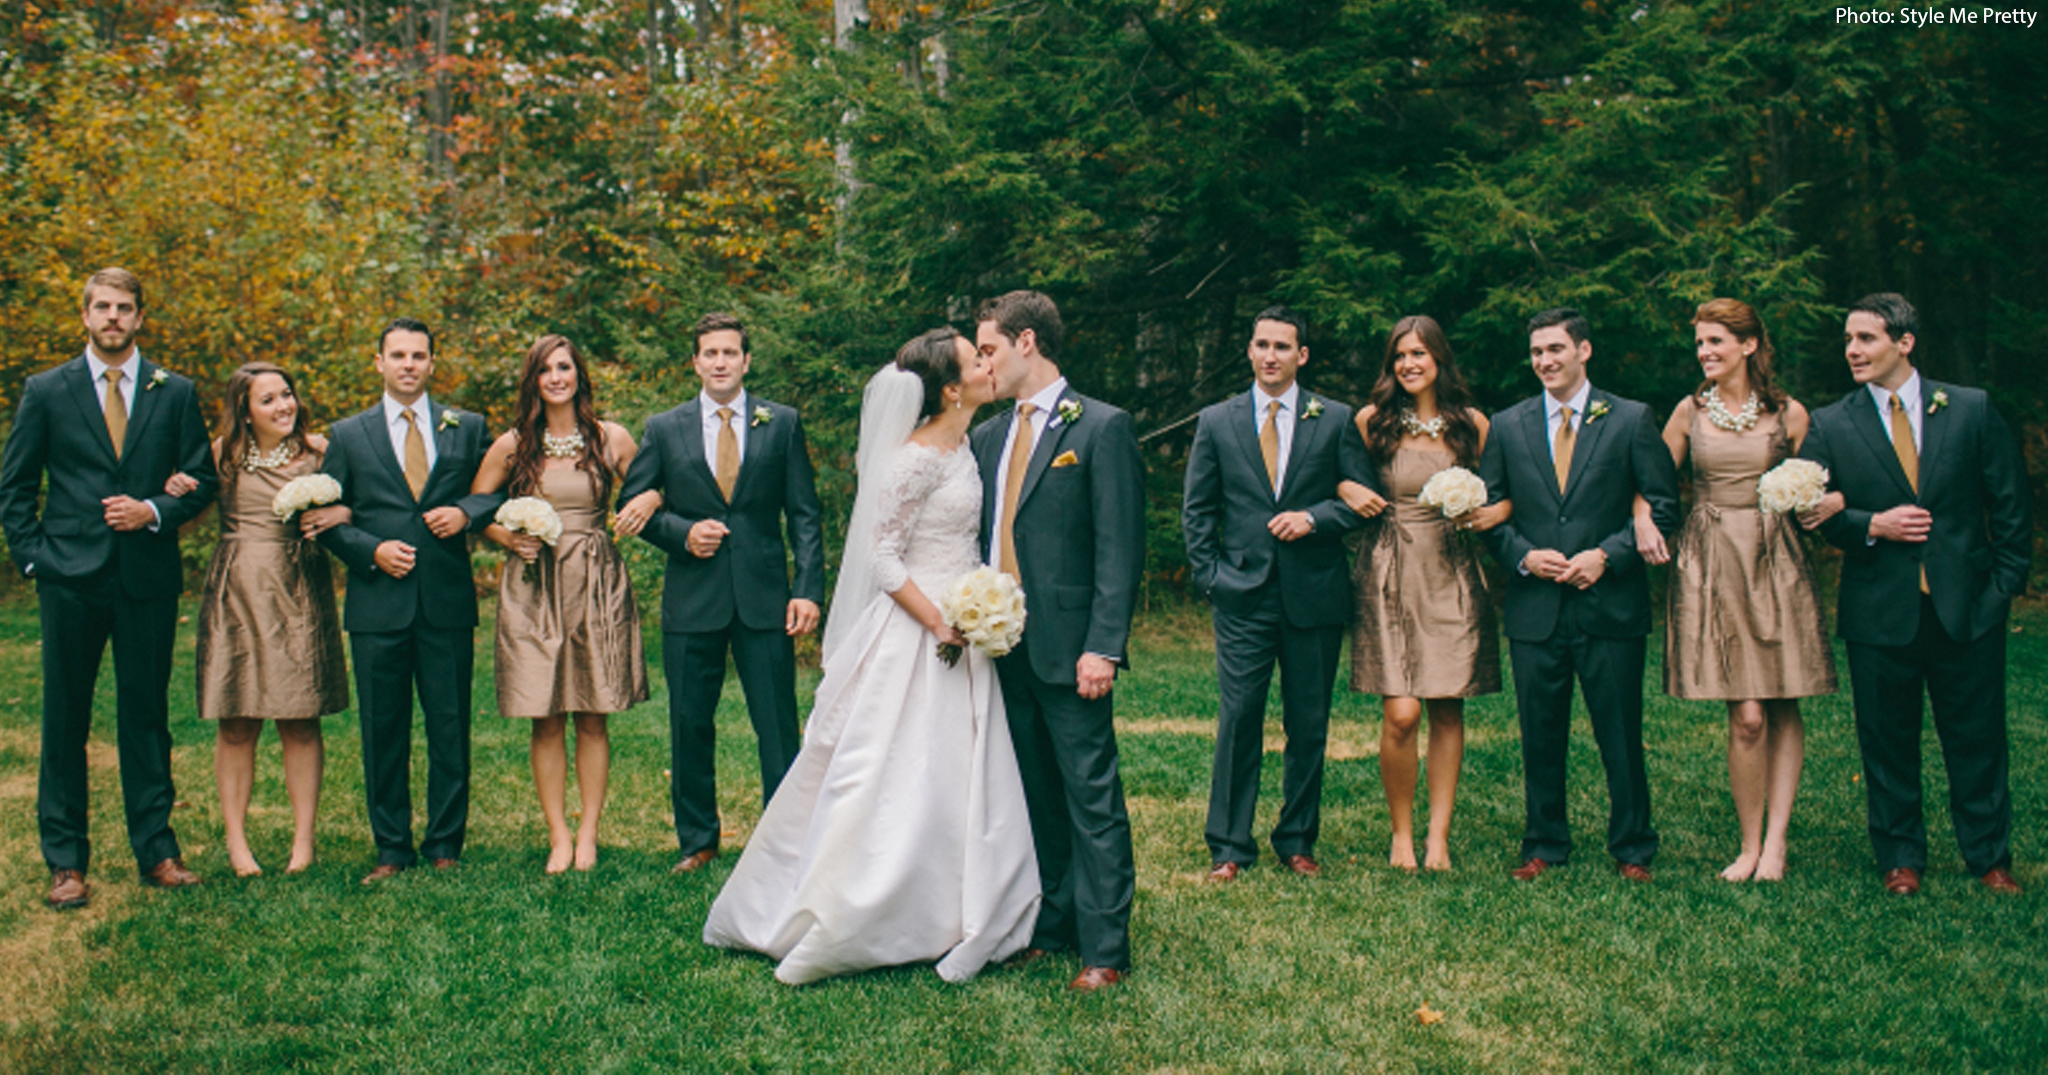 From One Bride-to-Be To The Next: What To Do If You Have